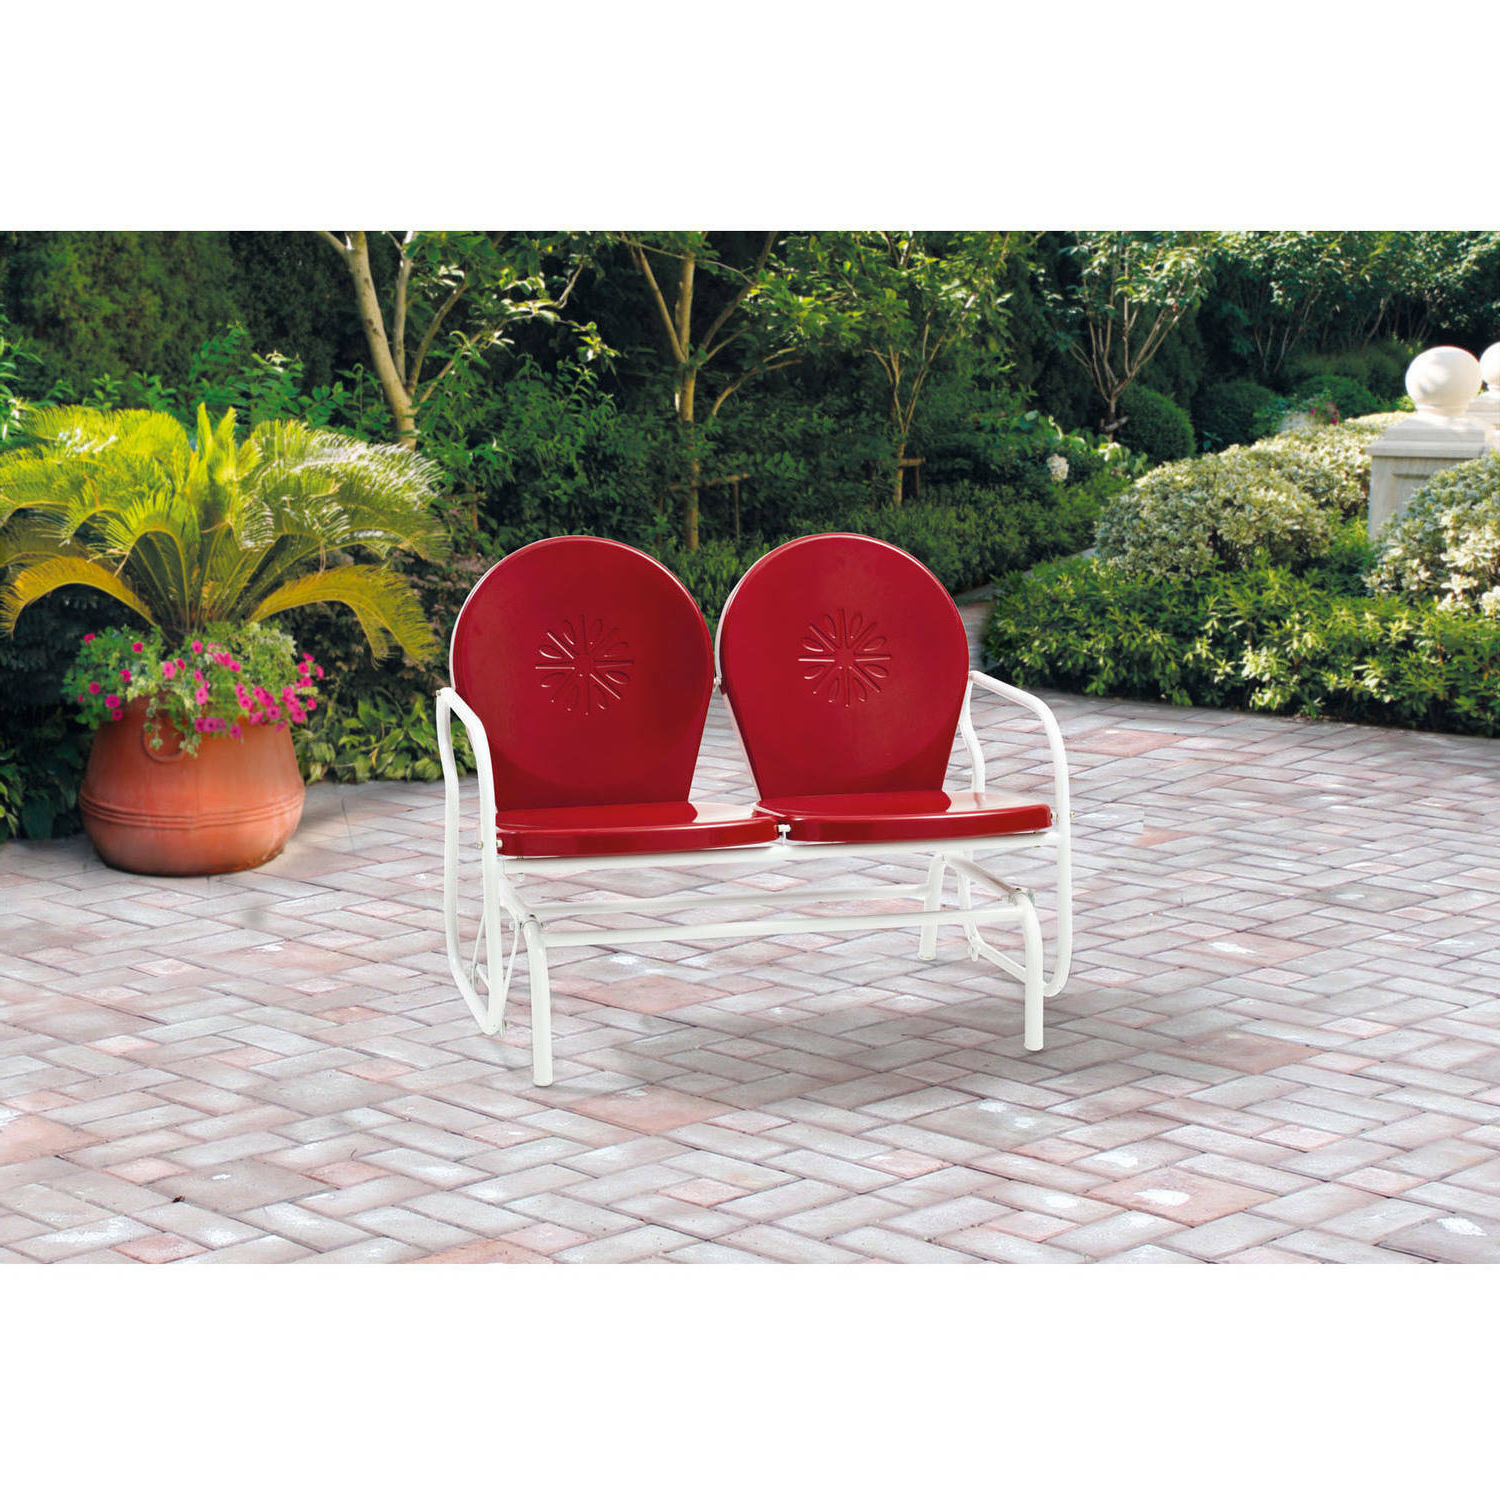 Favorite Retro Metal Glider Garden Seating Outdoor Furniture Yard Patio Red Chair  Seats 2 With Regard To Metal Retro Glider Benches (Gallery 8 of 30)